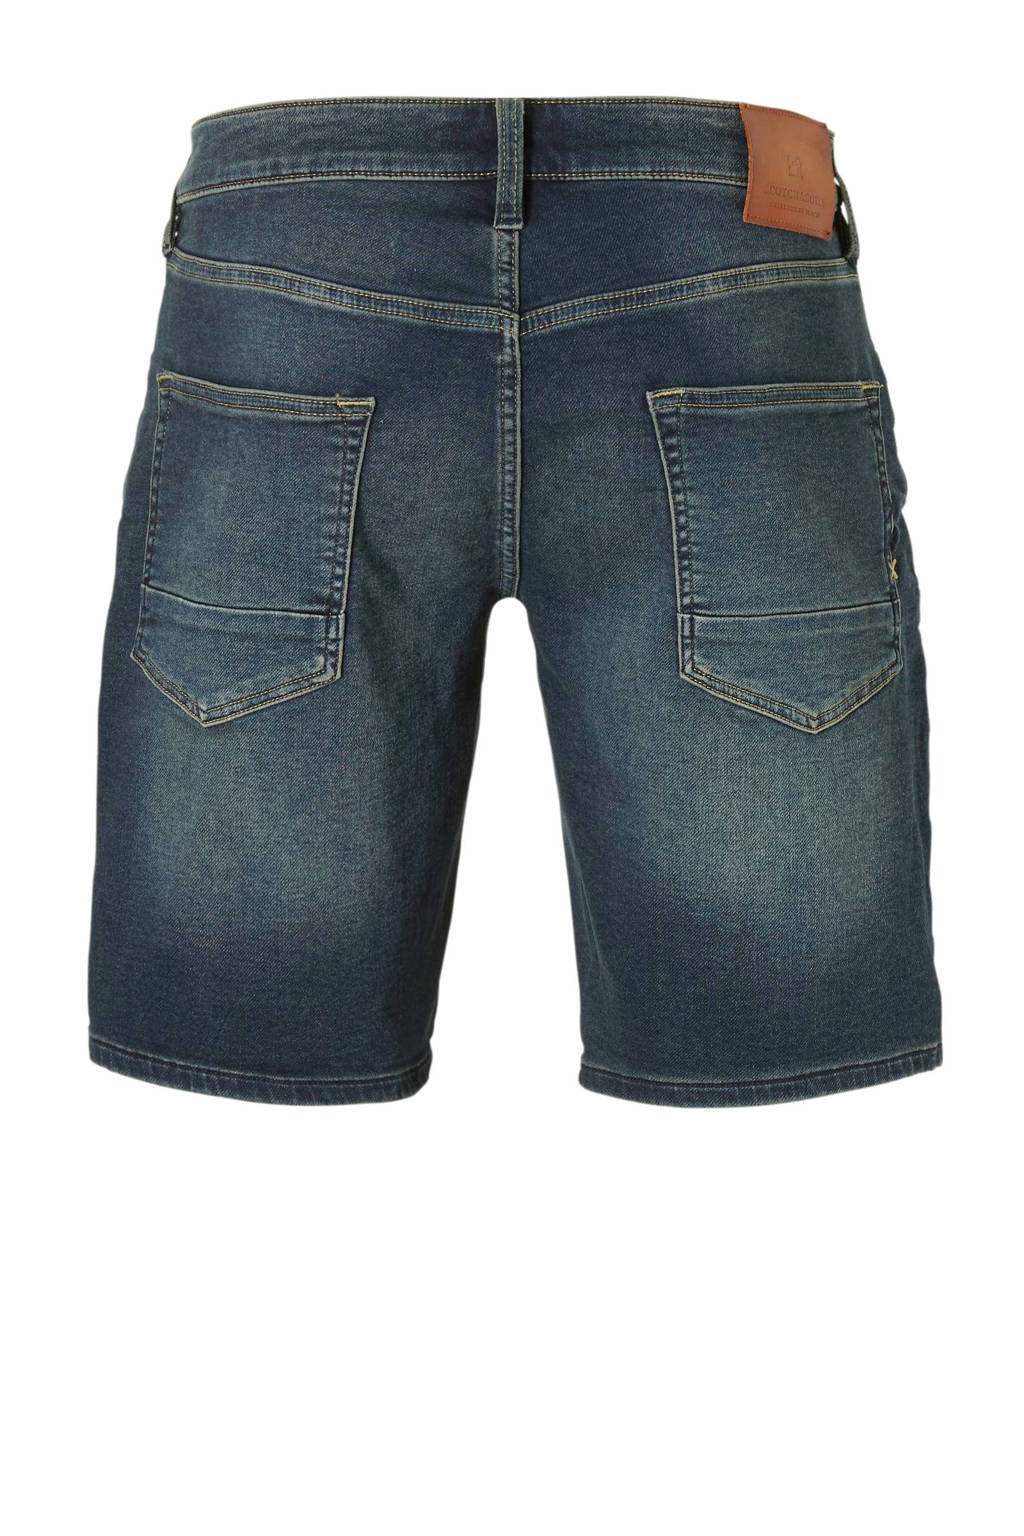 Ralston Sodaslim Fit Scotch Short amp; wBaRqIxYf